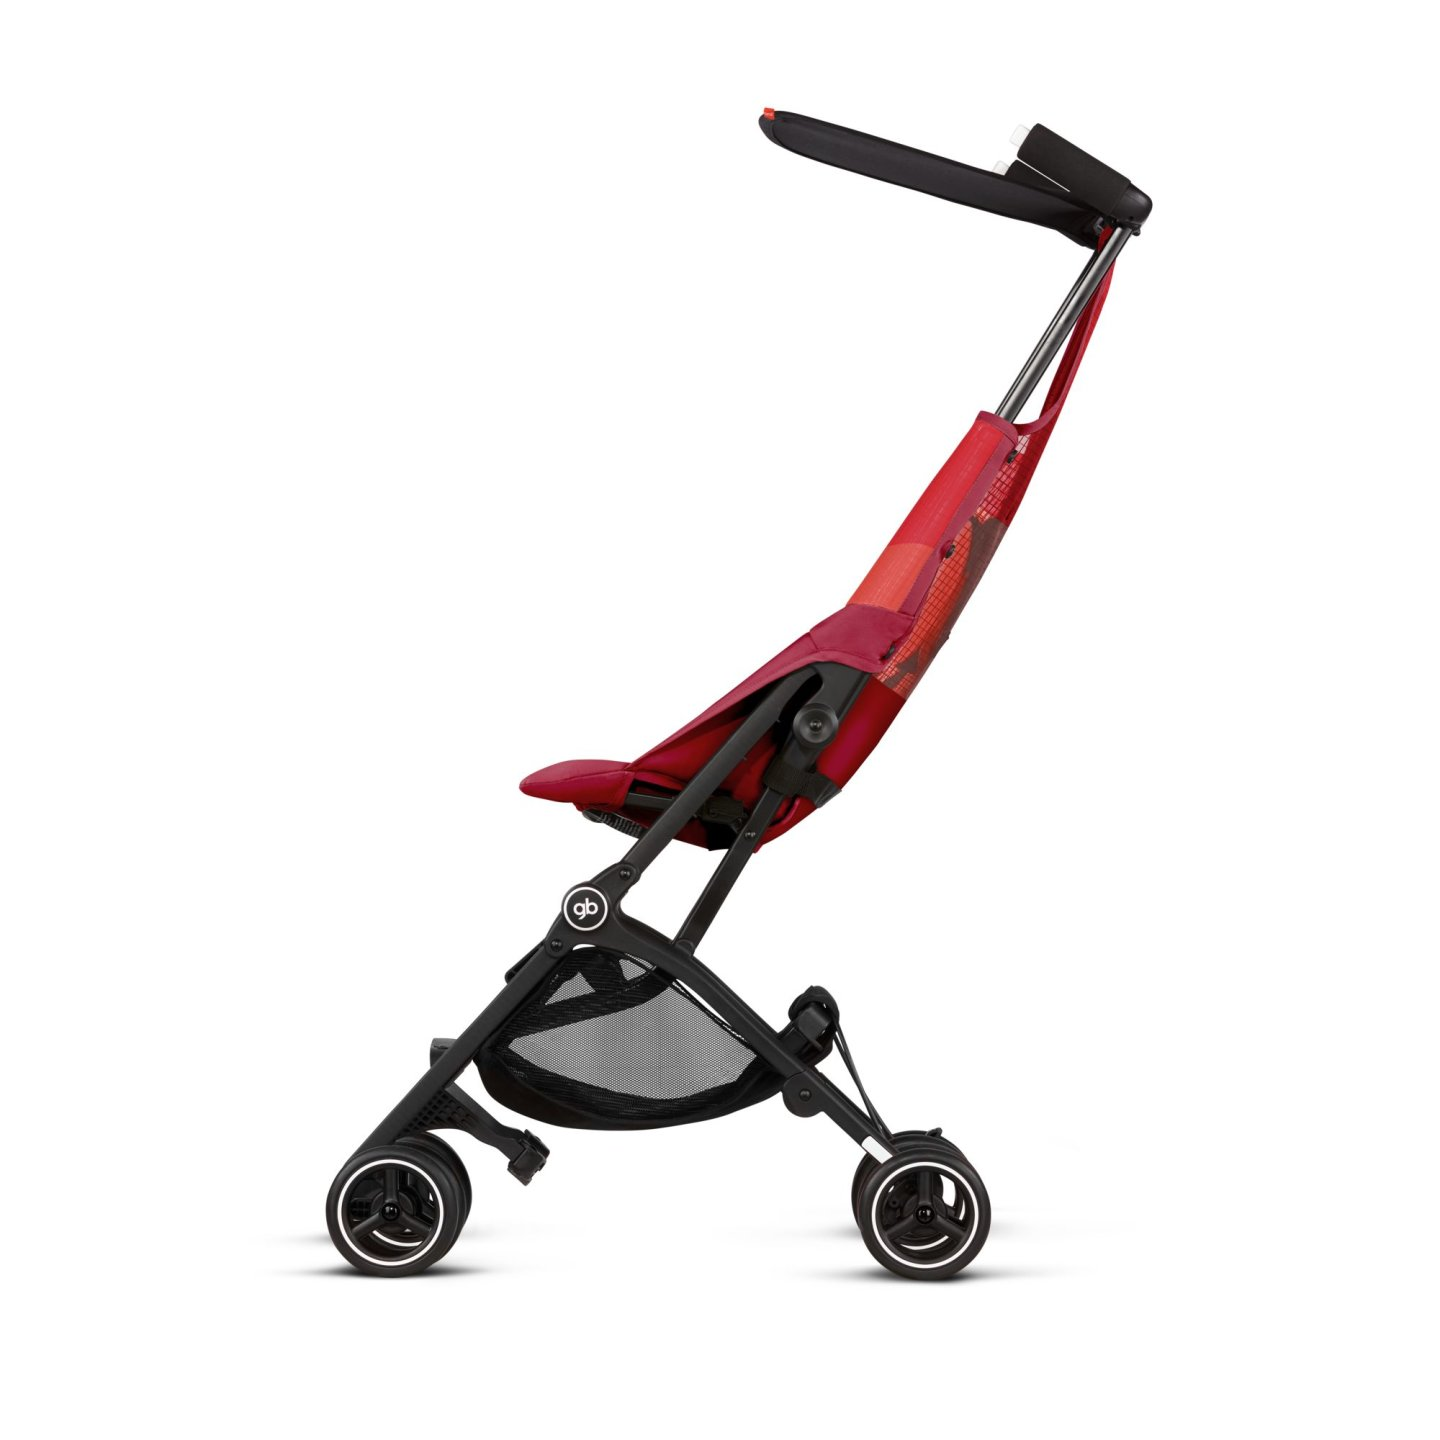 //images.gb-online.com/q_85,dn_72,h_1440/gbo/product-Pockit-Air-All-Terrain-Rose-Red-Featherlight-8620-8617-8589_p65ev1